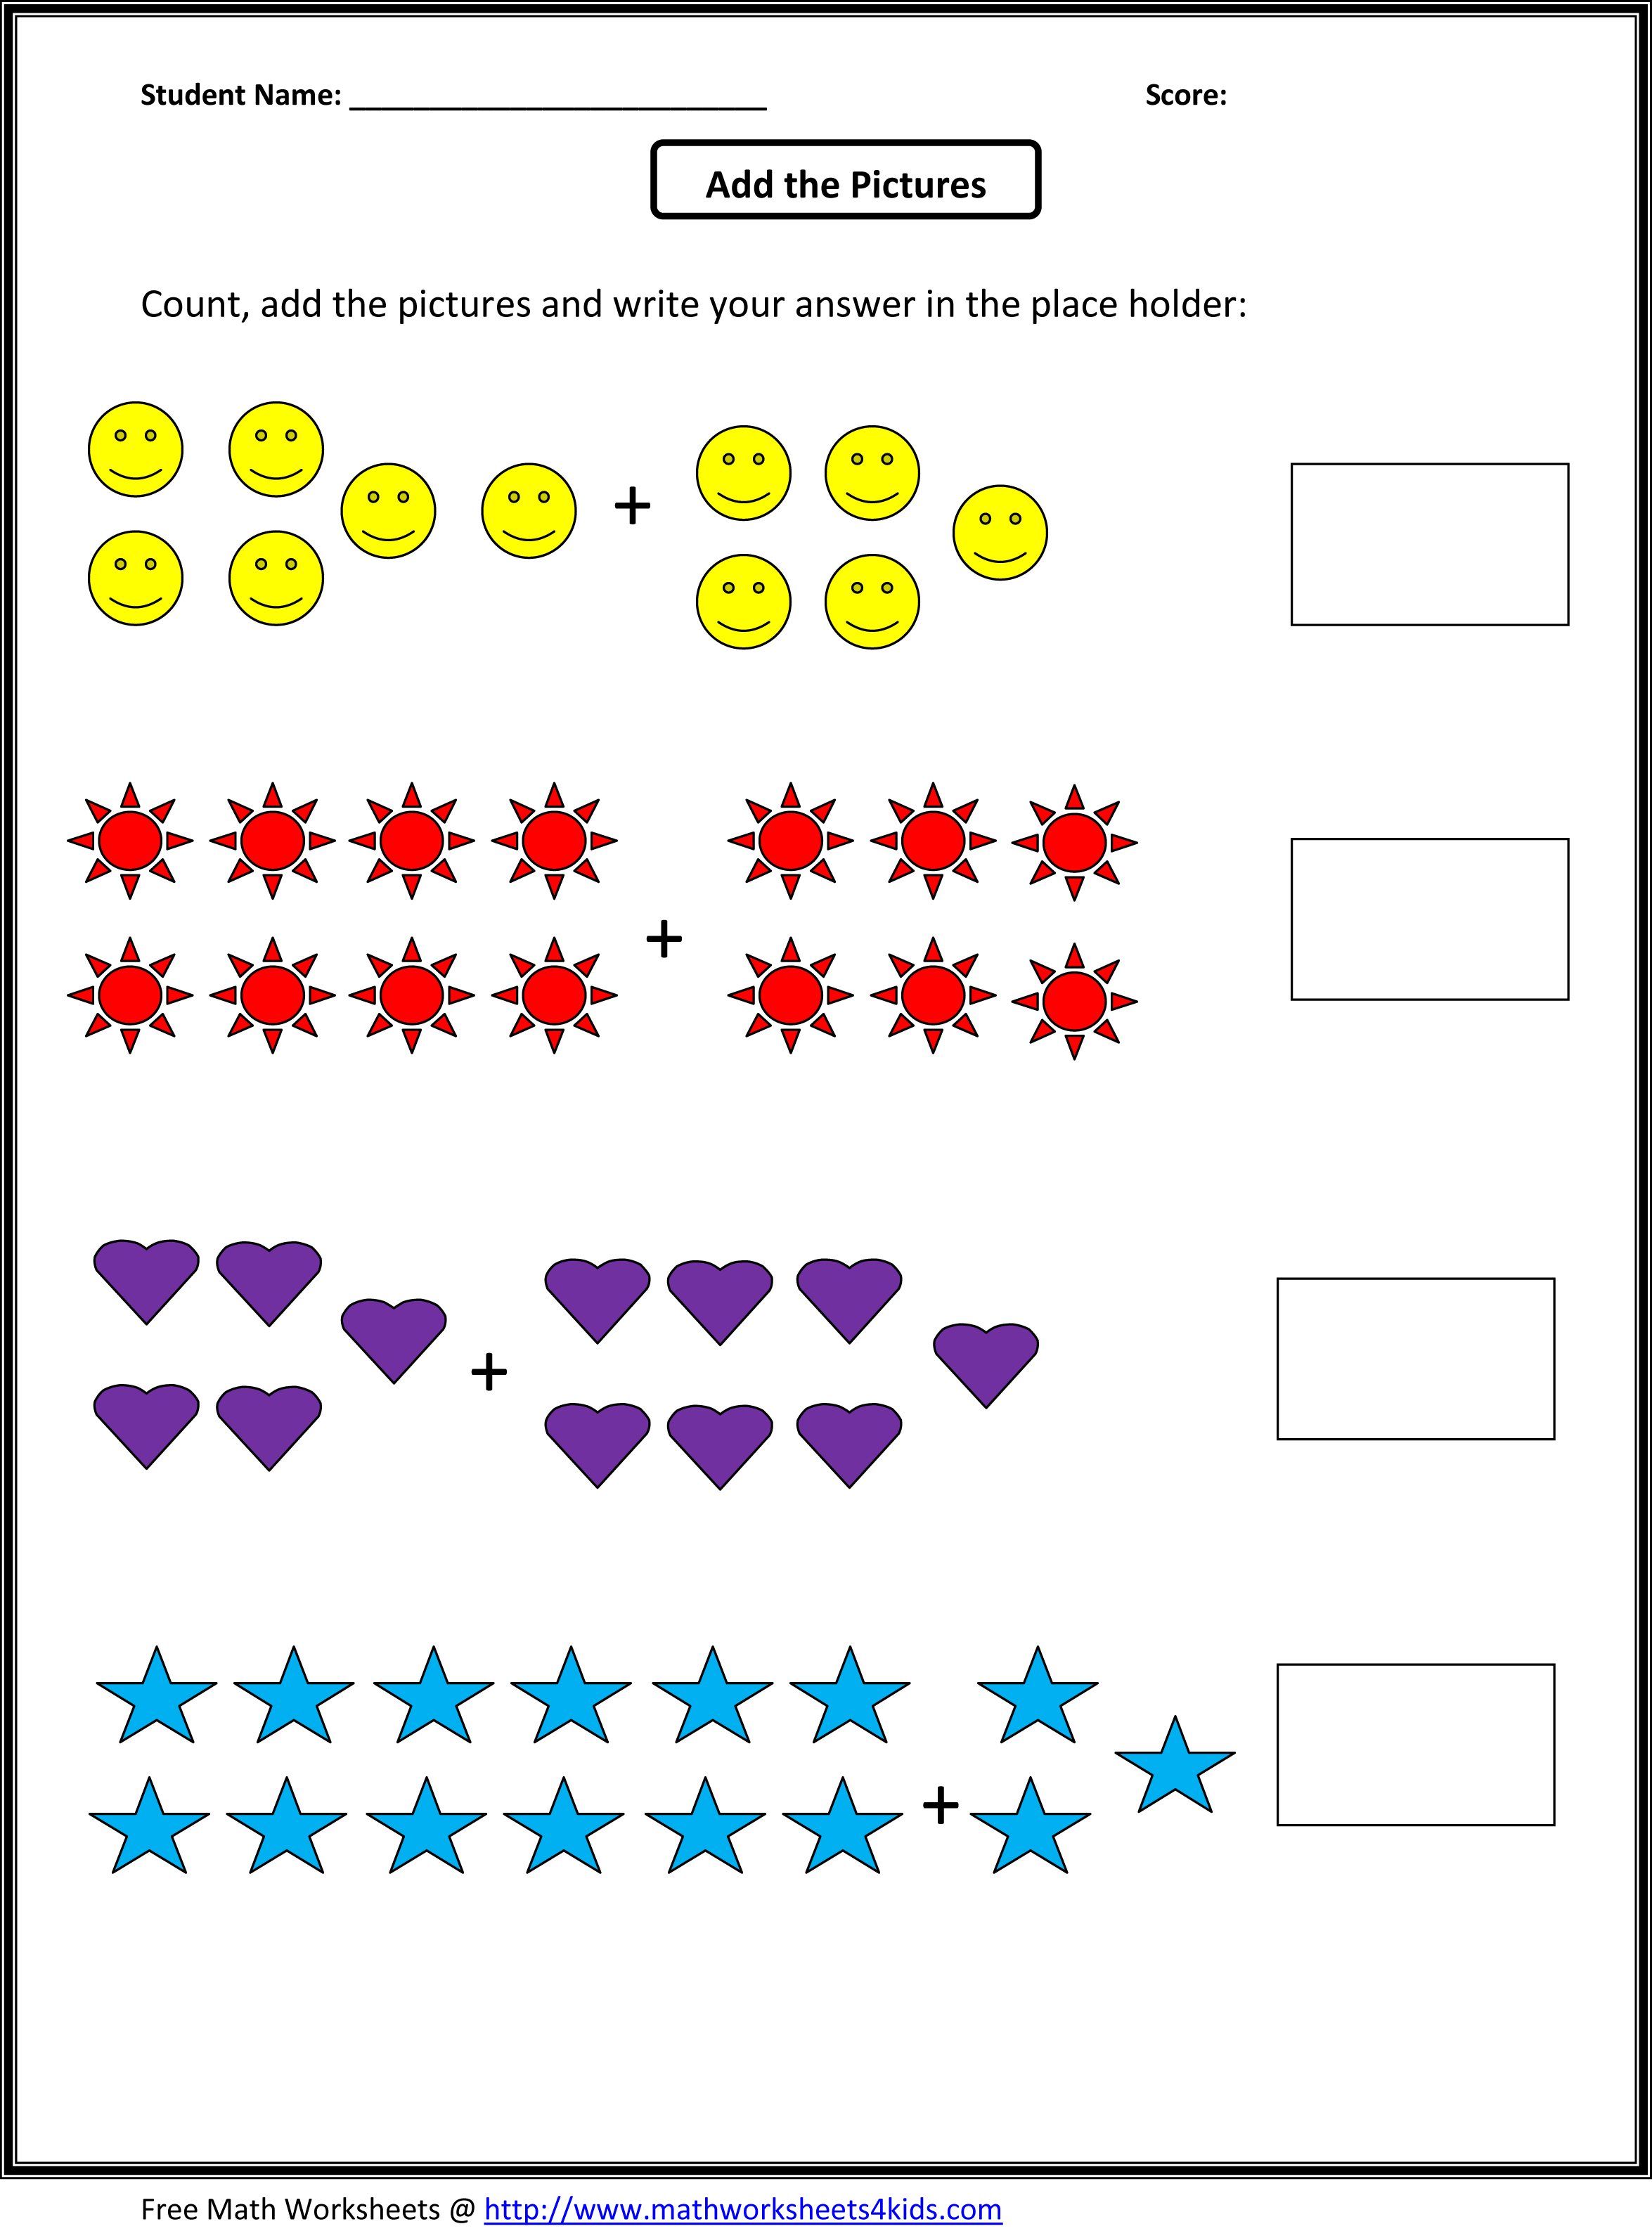 Weirdmailus  Picturesque Grade  Maths Worksheet  Reocurent With Hot Math Worksheets For St Grade Free  Reocurent With Cool Two Steps Equations Worksheets Also Distributive Property Problems Worksheet In Addition Worksheets Pronouns And Sentence Parts Worksheet As Well As Esl Adjectives Worksheets Additionally Evs Worksheets For Kids From Reocurentcom With Weirdmailus  Hot Grade  Maths Worksheet  Reocurent With Cool Math Worksheets For St Grade Free  Reocurent And Picturesque Two Steps Equations Worksheets Also Distributive Property Problems Worksheet In Addition Worksheets Pronouns From Reocurentcom